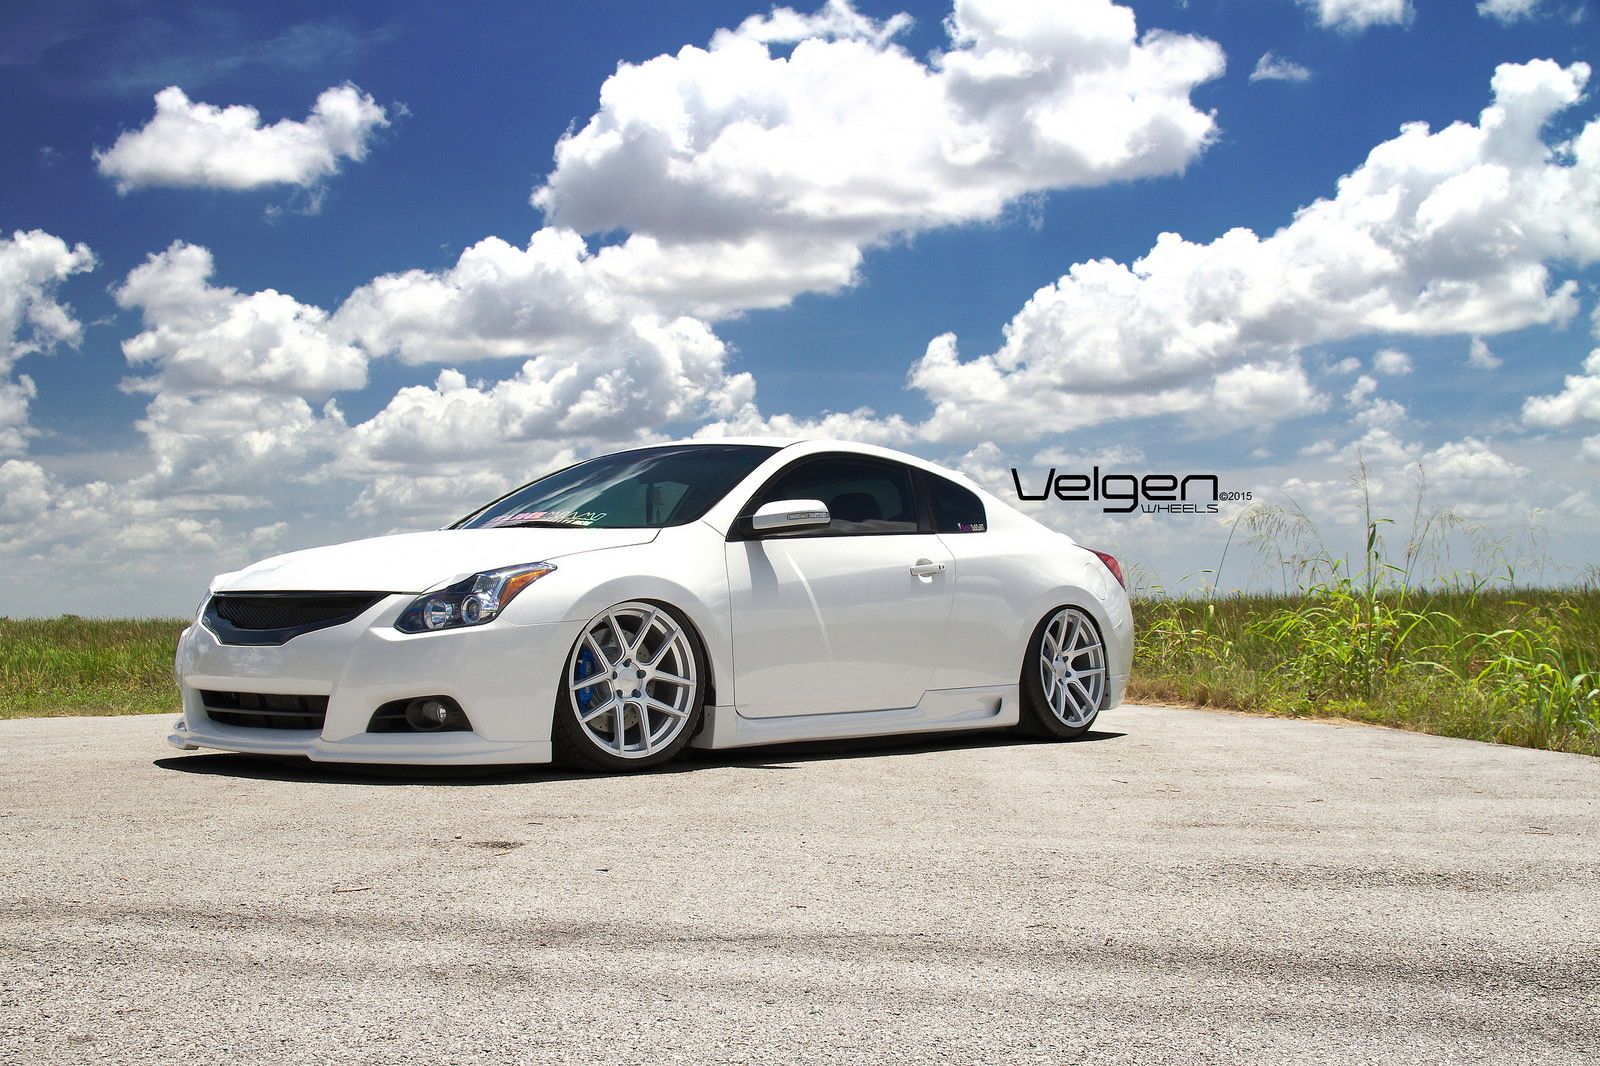 bagged nissan altima coupe on velgen wheels vmb5